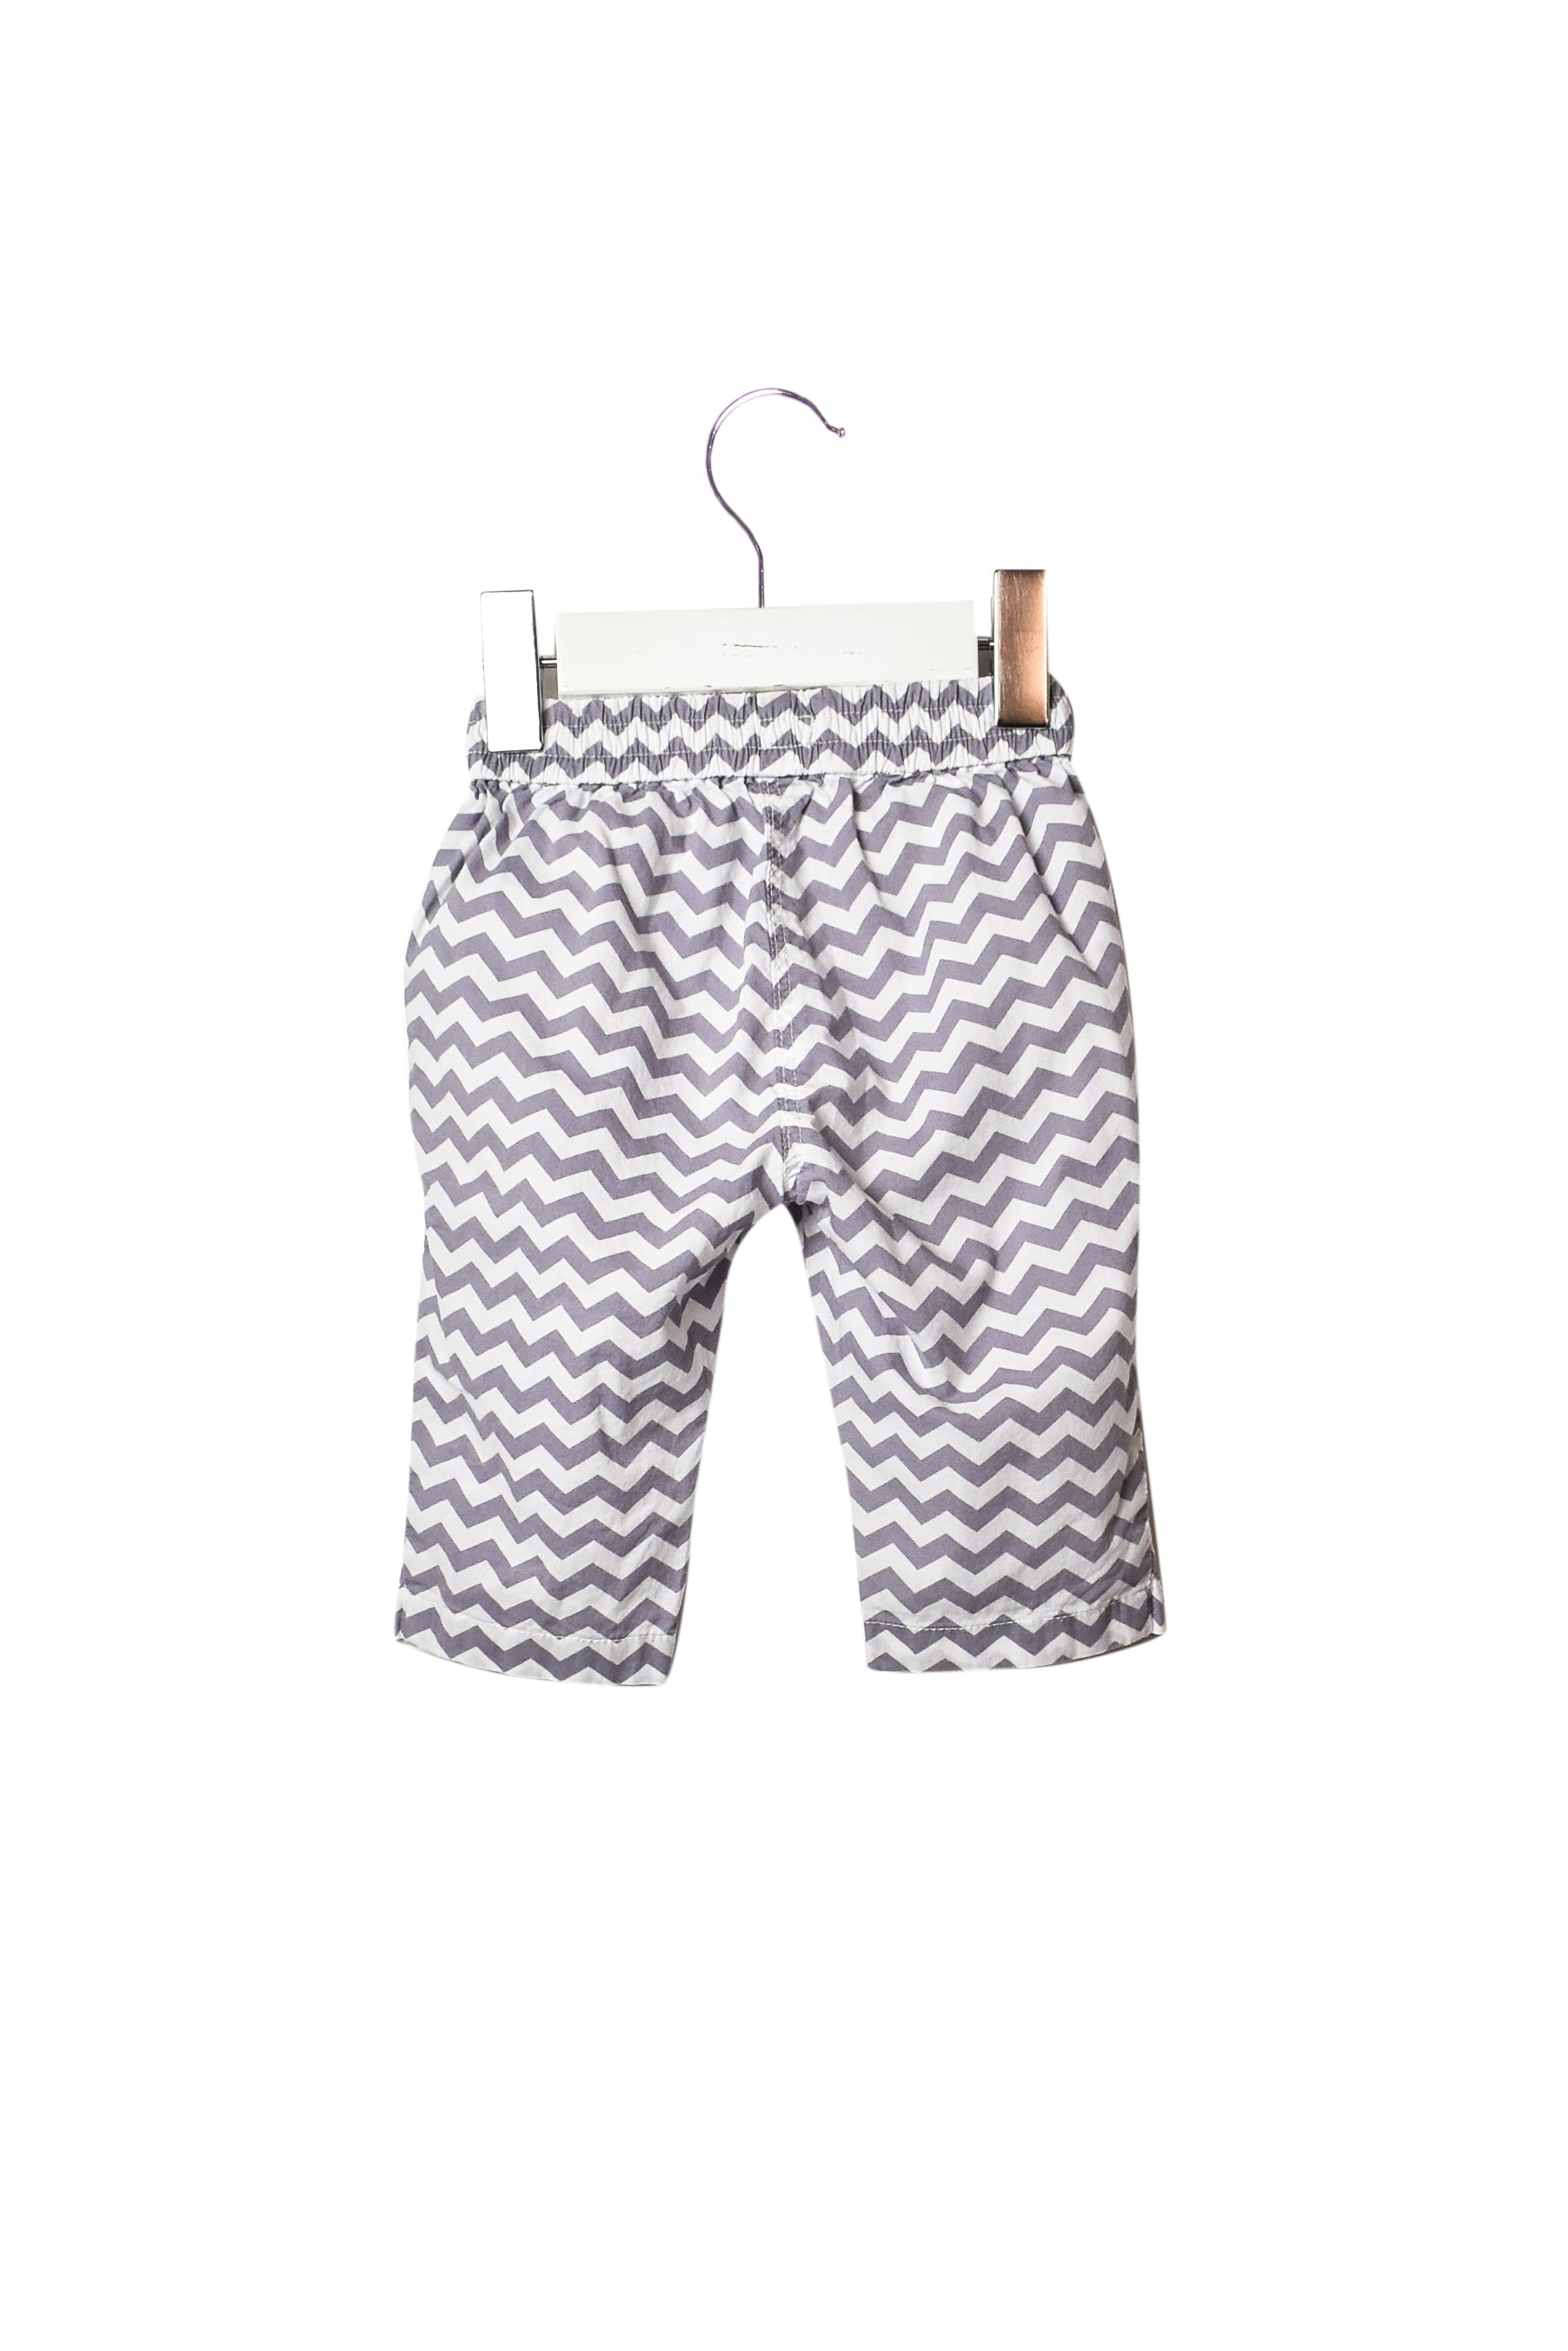 10007980 Country Road Baby~ Pants 3-6M at Retykle